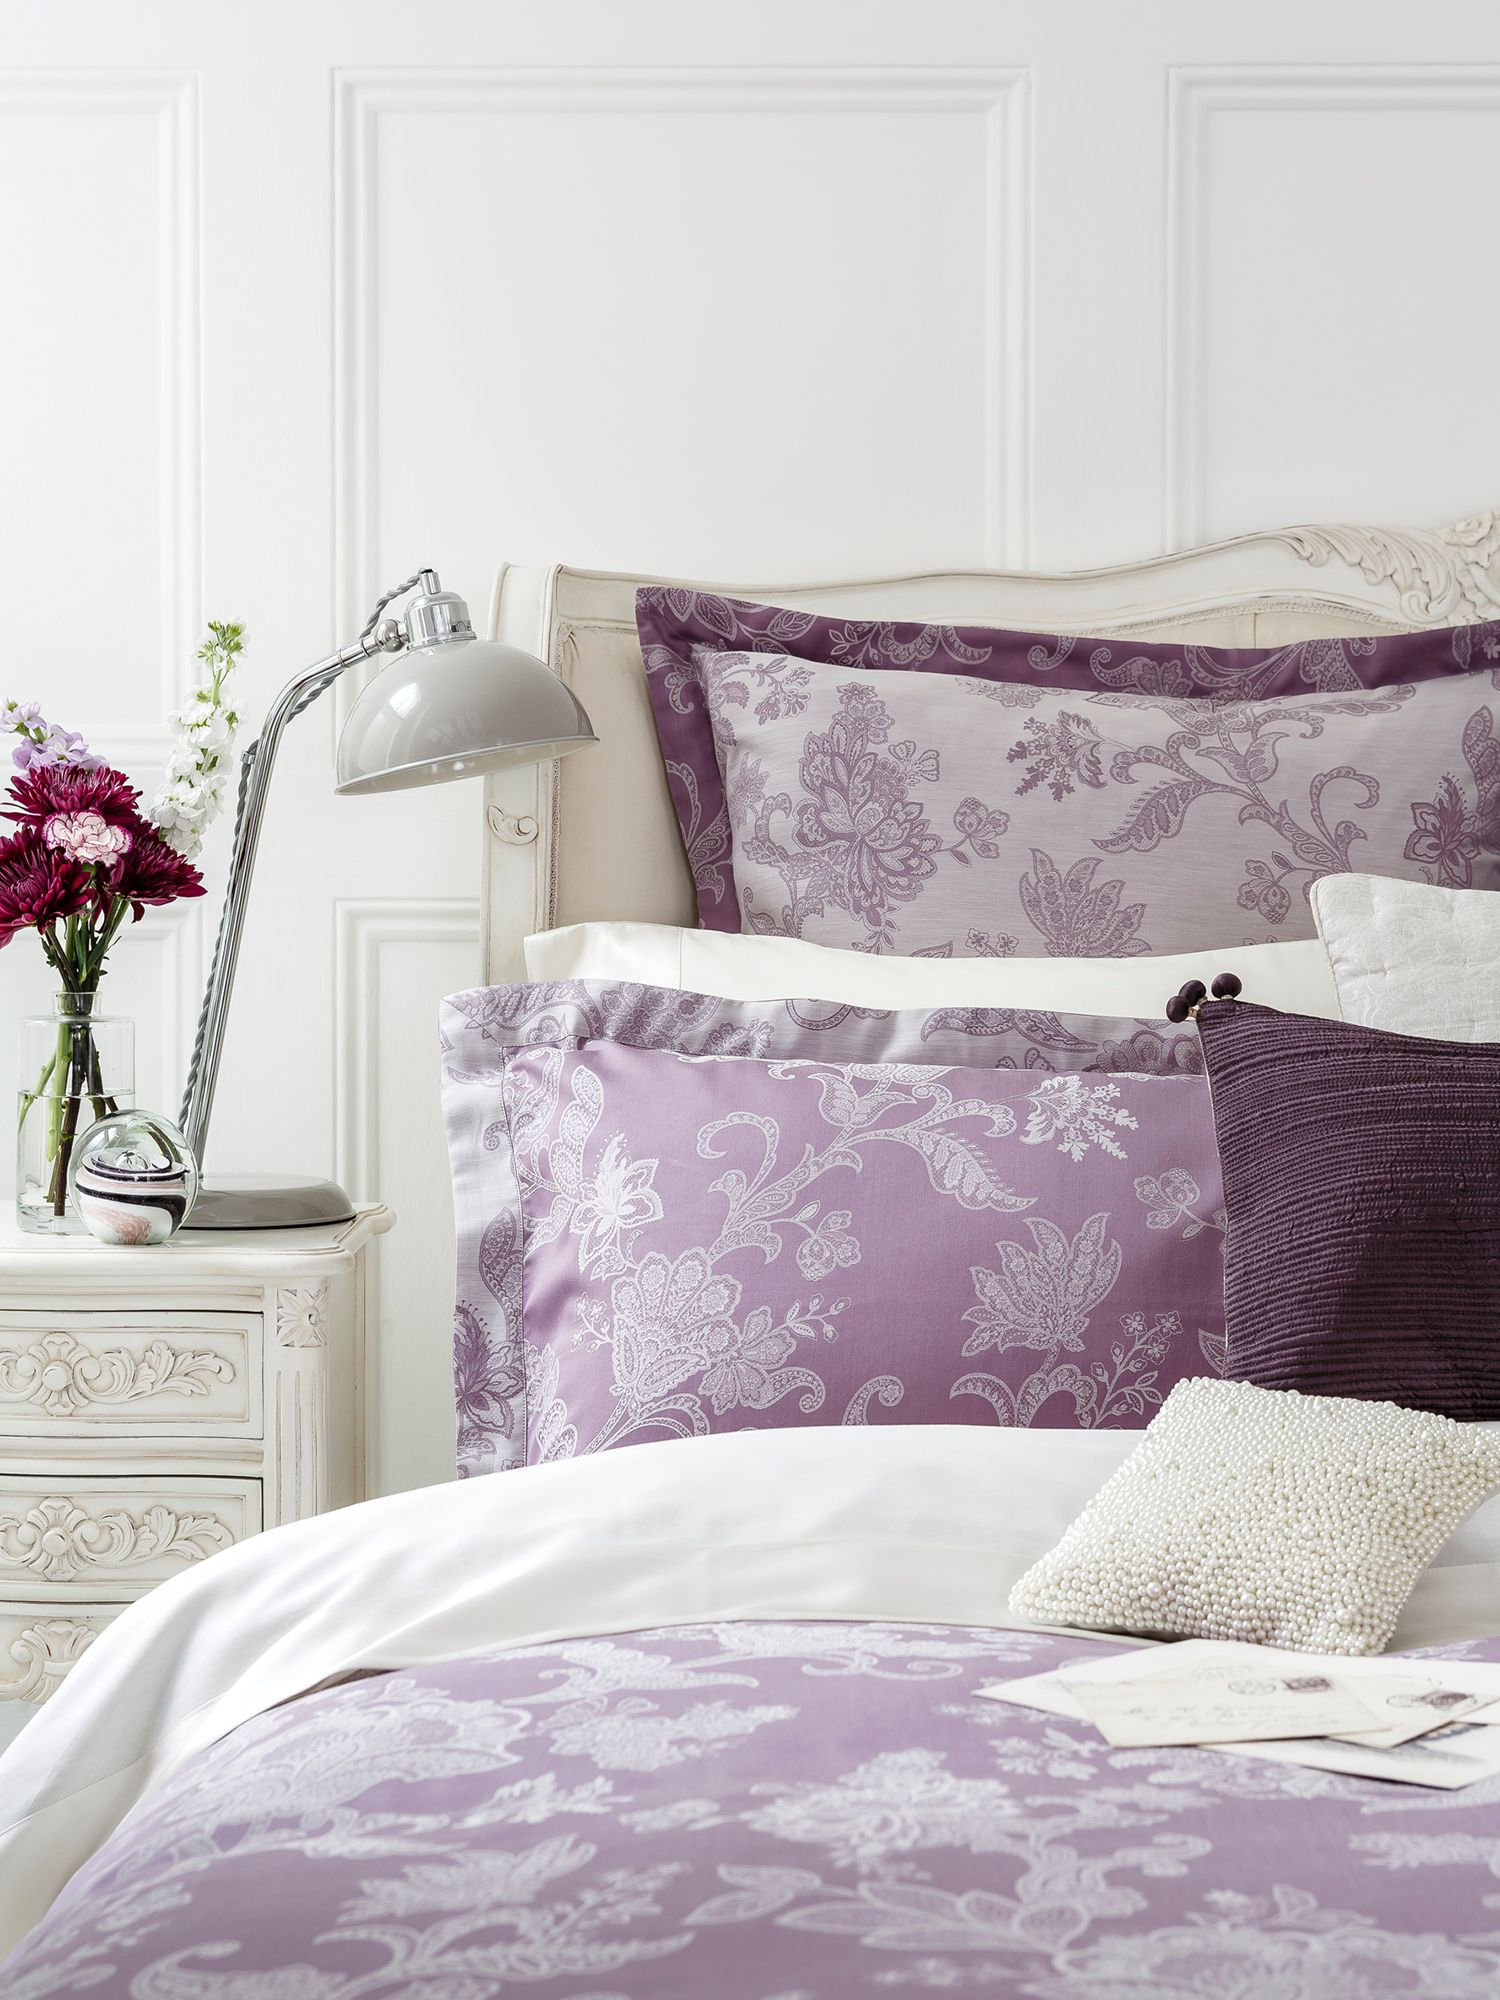 Chesham bed linen in mauve